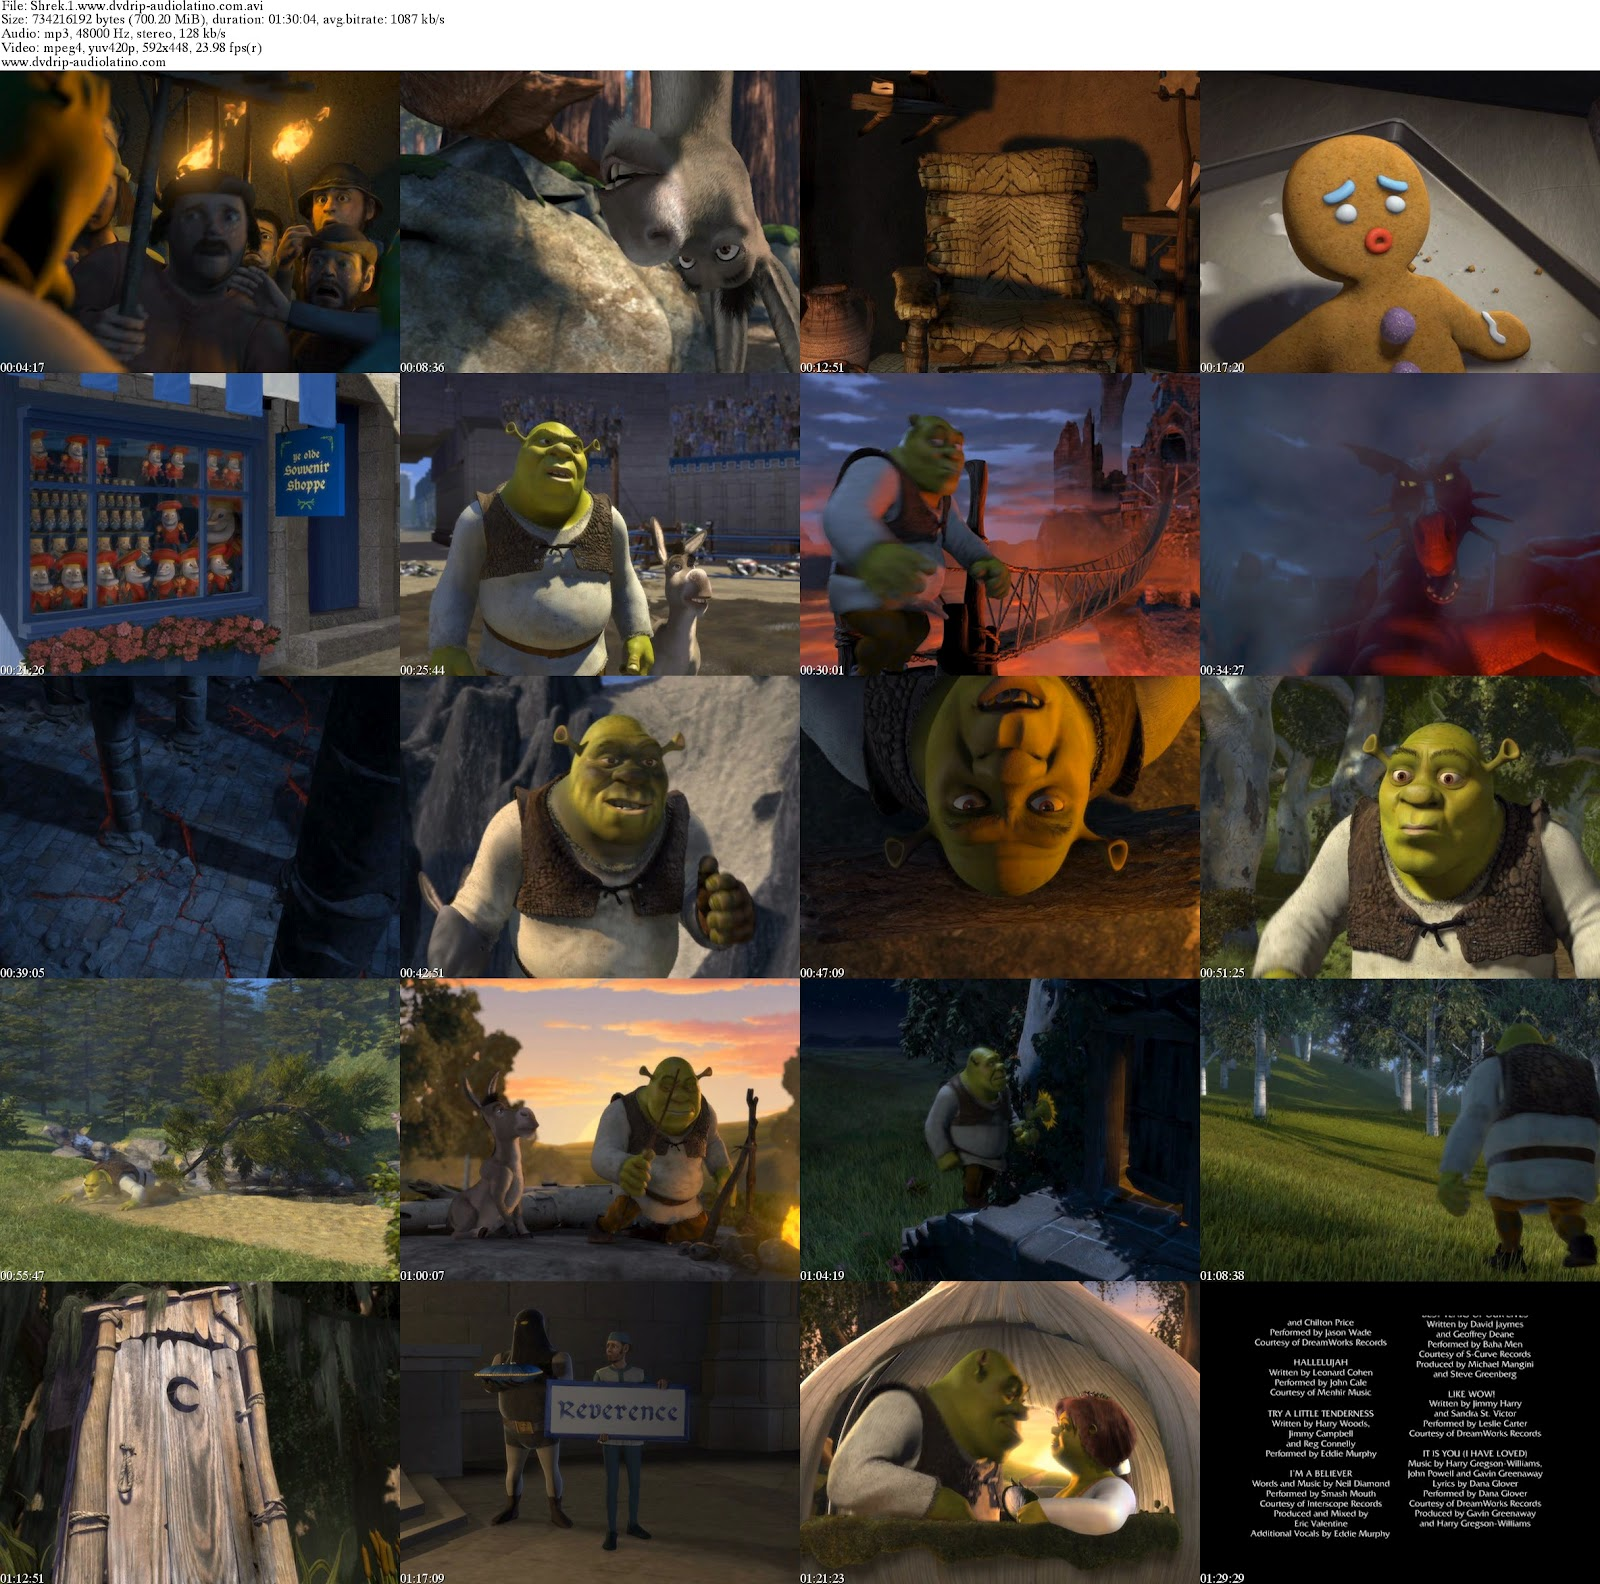 An Analysis of the Movie Monsters, Inc.